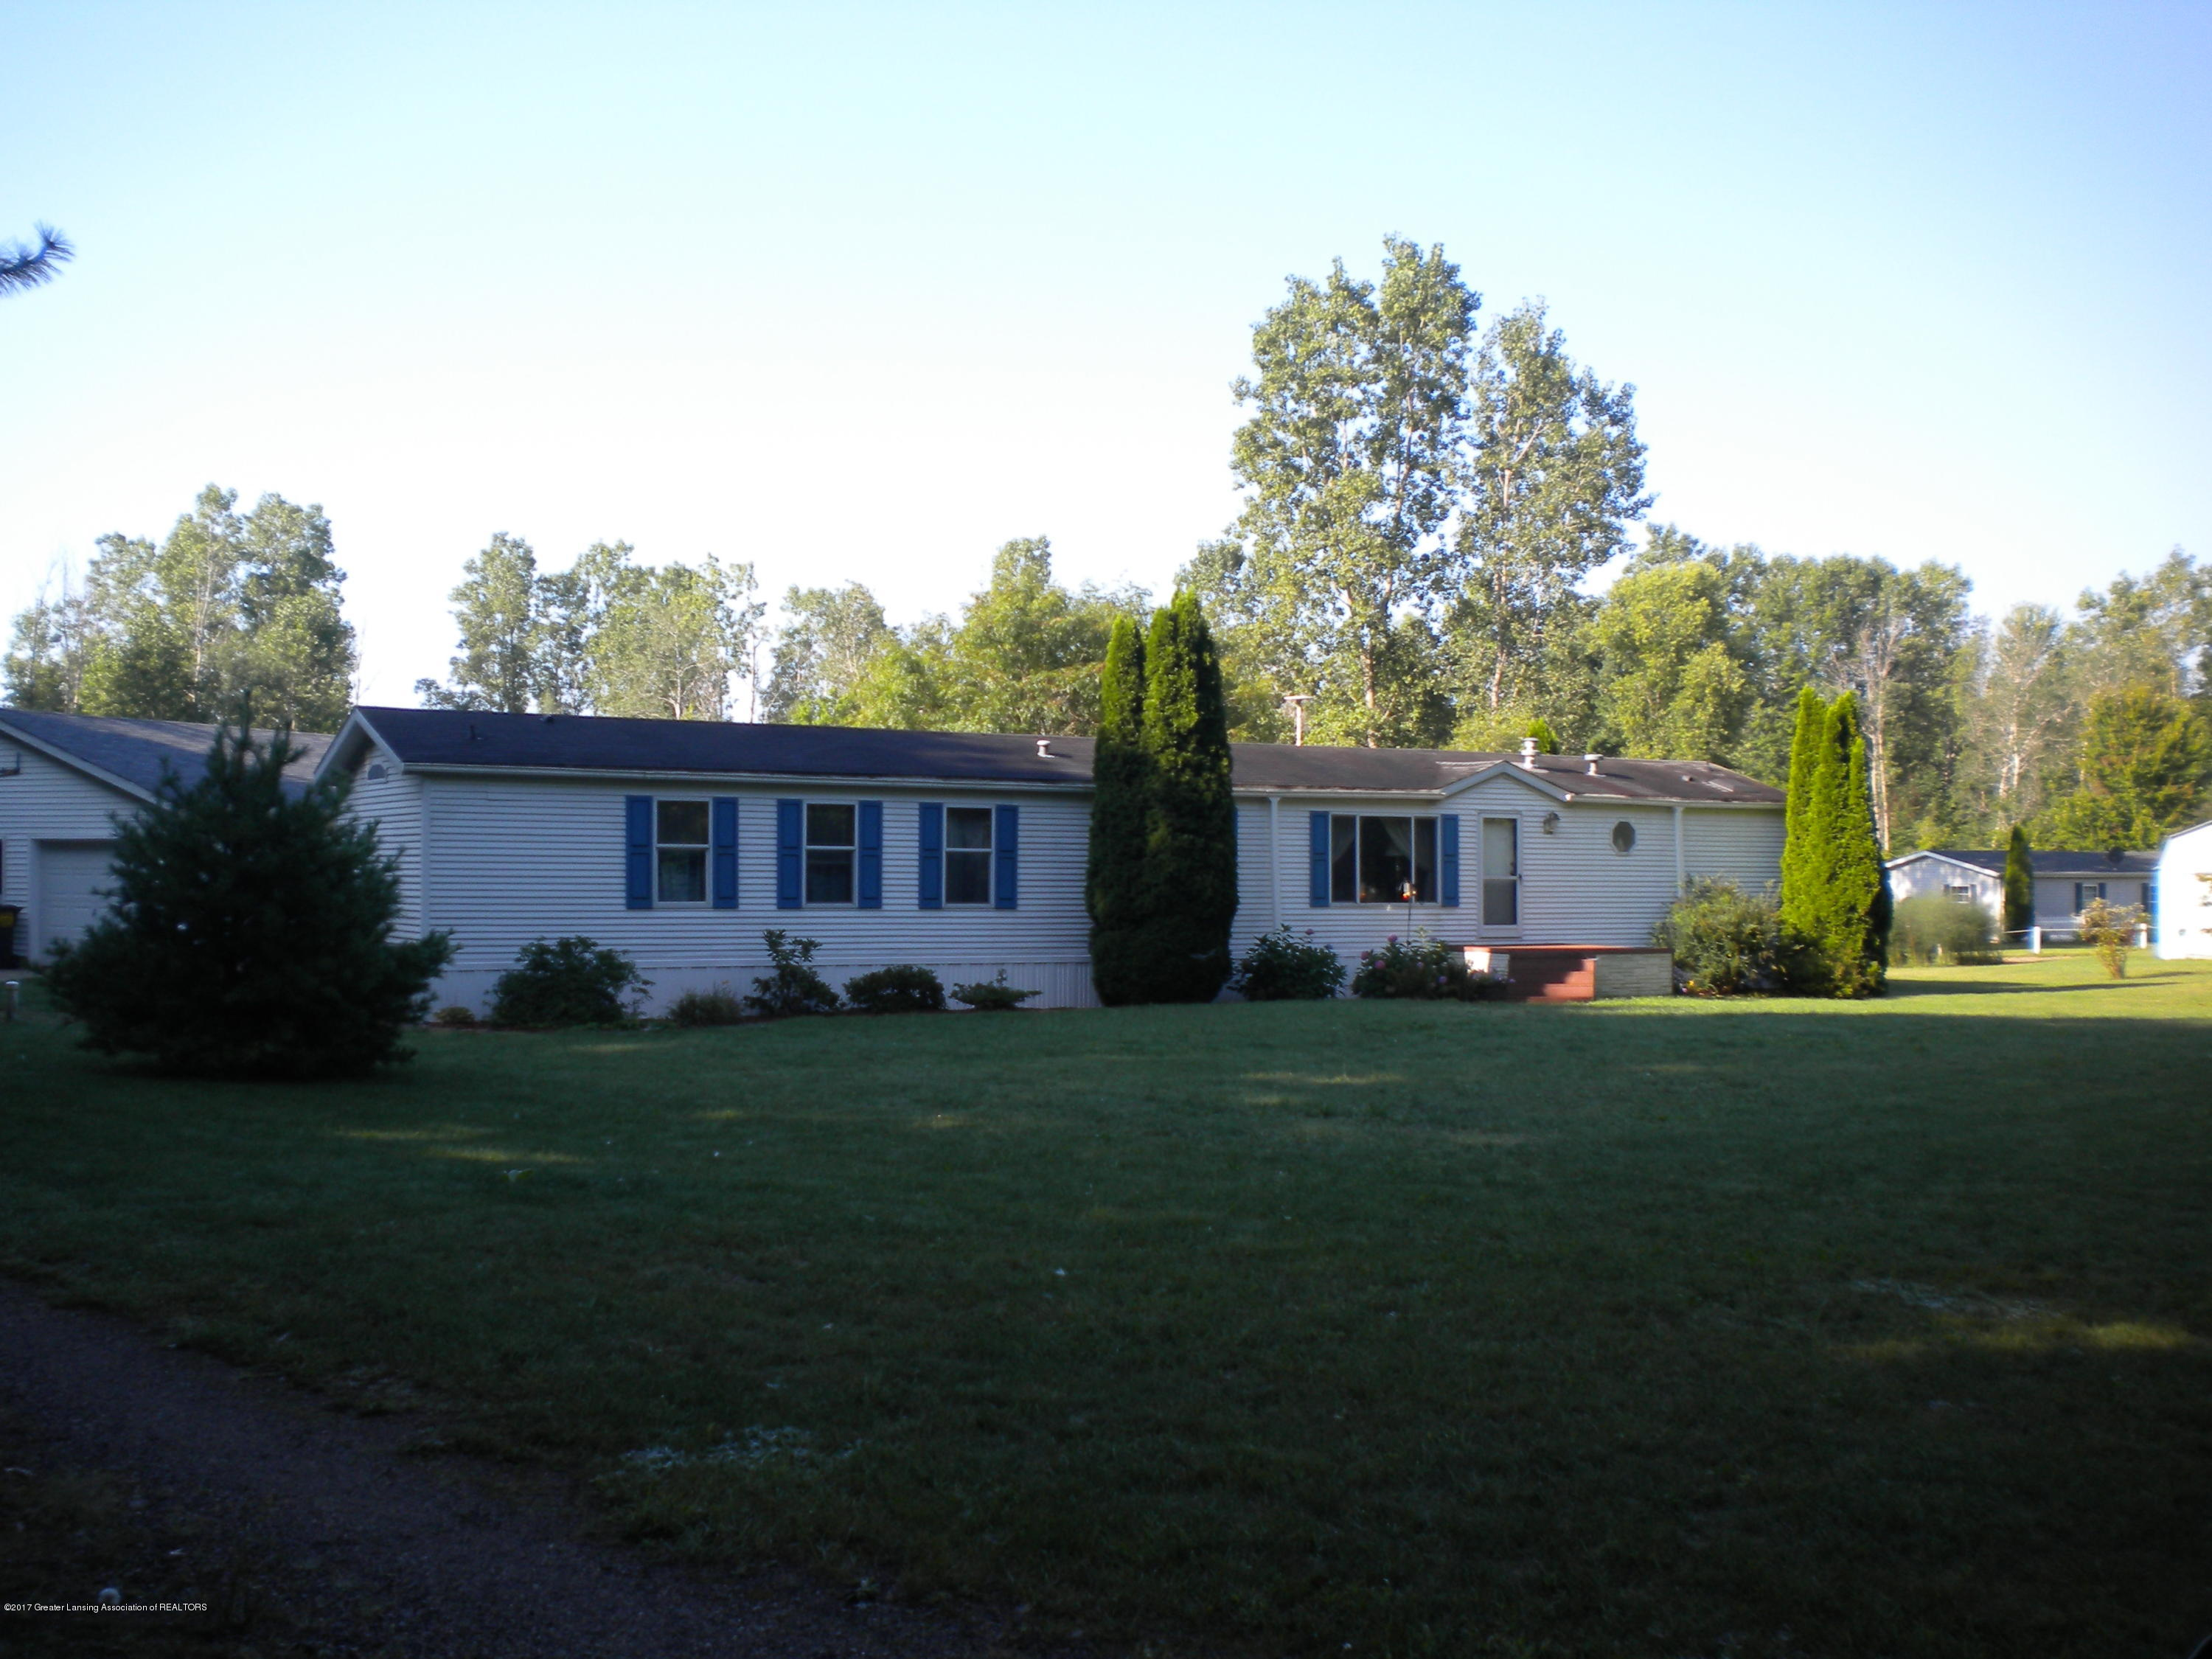 555 Ewers Rd - FRONT - 1